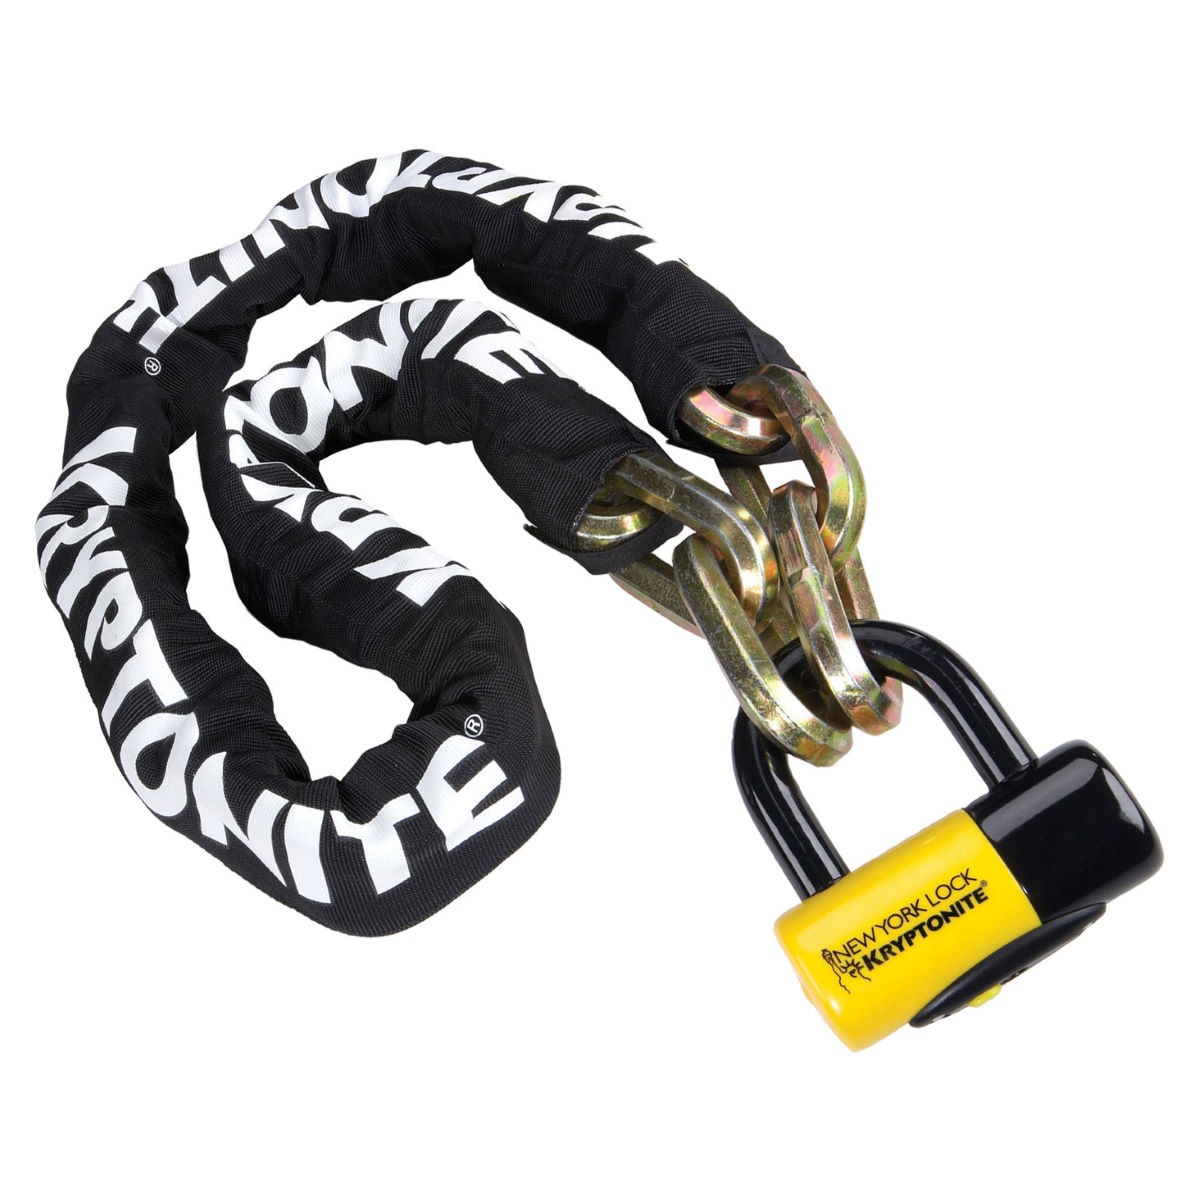 Chaîne et cadenas Kryptonite New York Fahgettaboudit (150 cm)